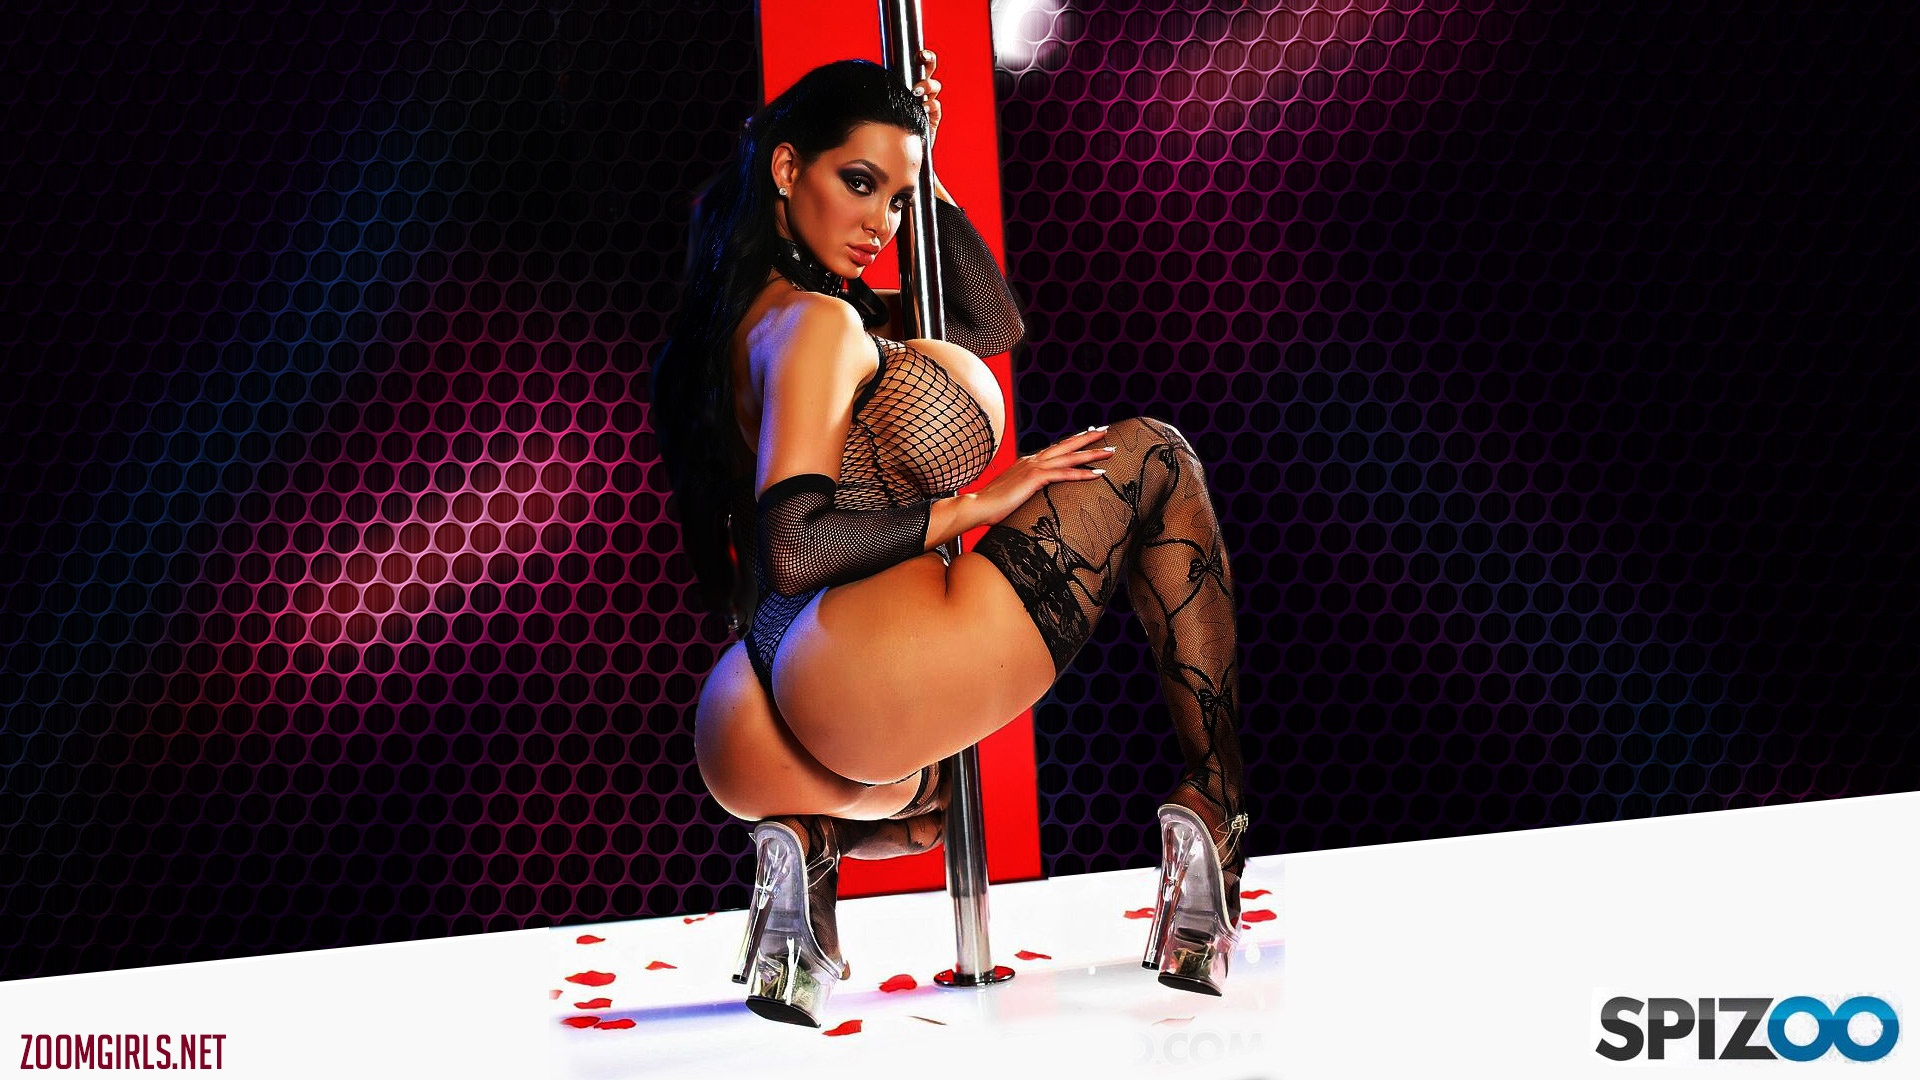 The Hottest Pornstars Ever Only On Zoomgirls Net Added November 15 2014 Amy Anderssen